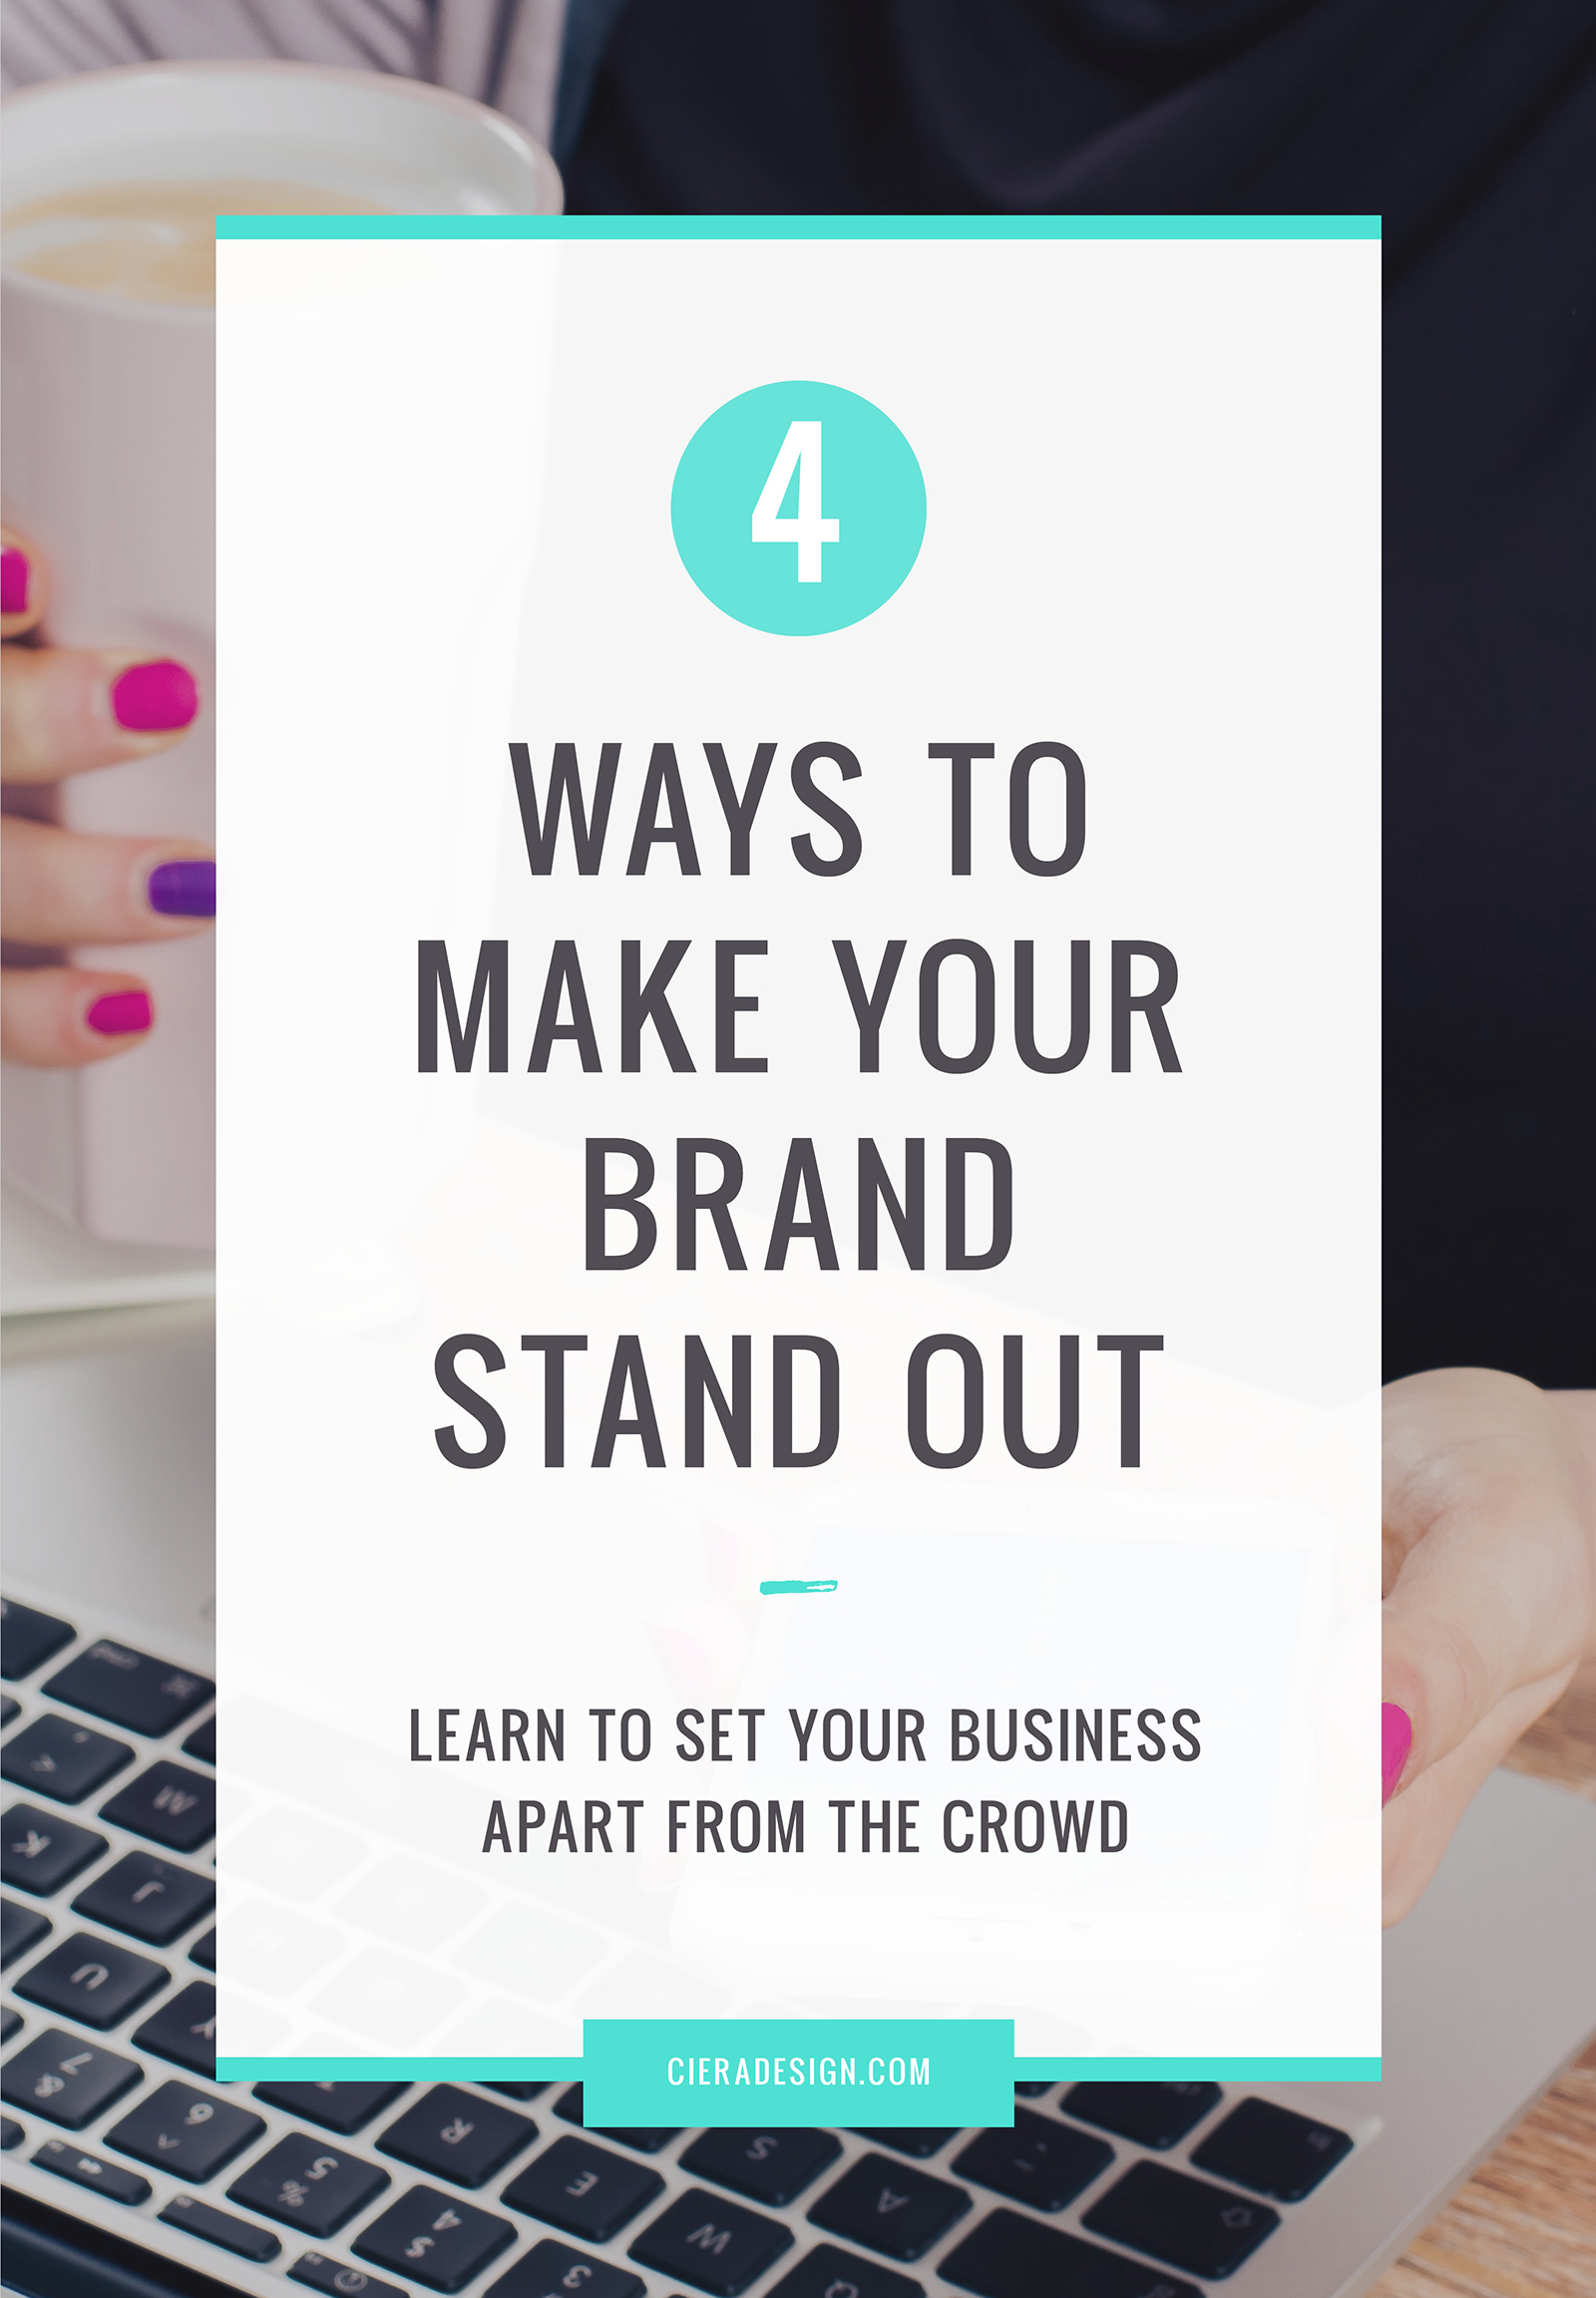 Click through to learn how to set your business apart from the crowd!